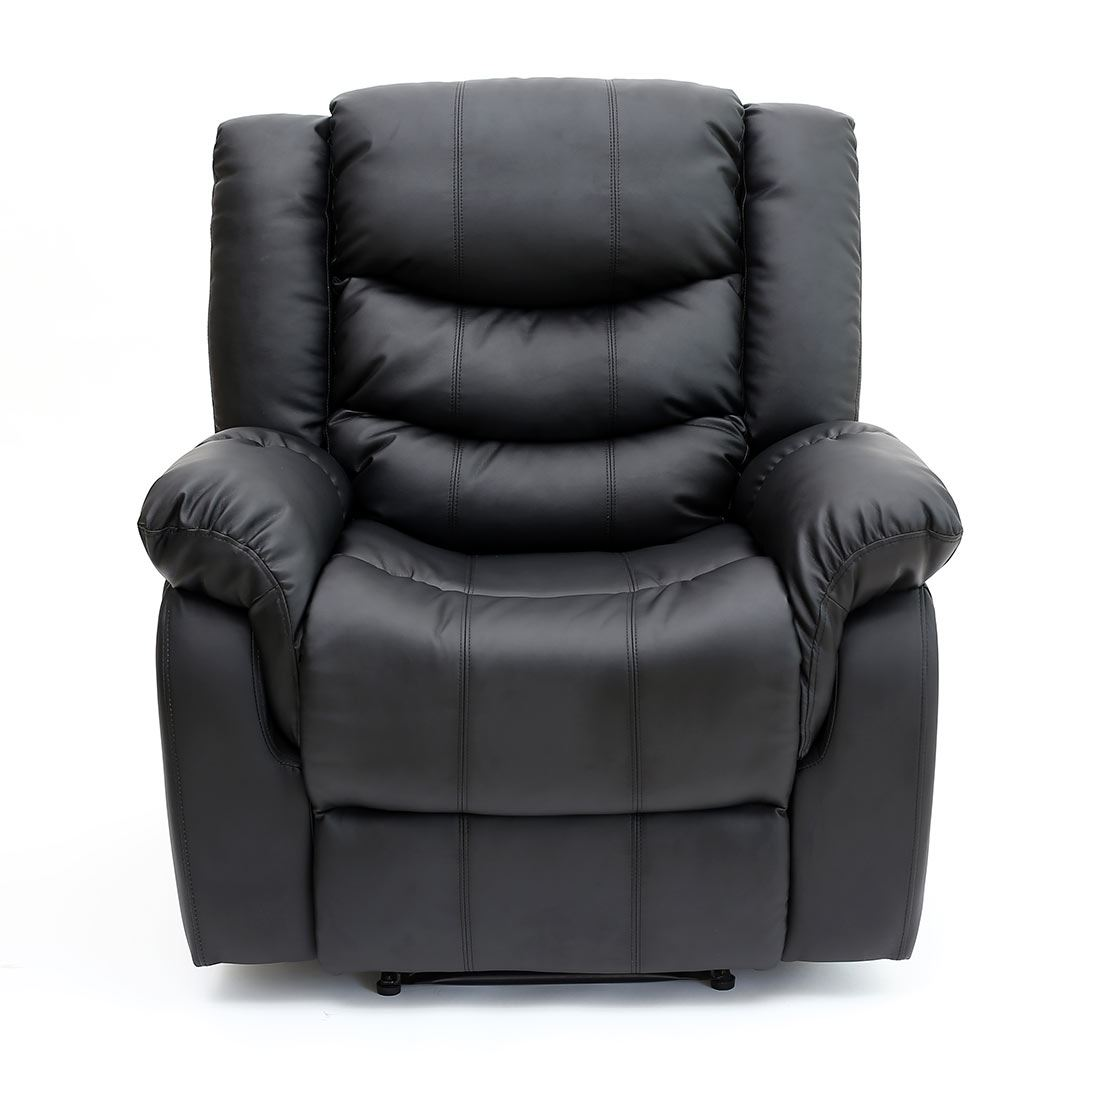 Supreme Furniture Chairs Price Seattle Leather Recliner Armchair Sofa Home Lounge Chair